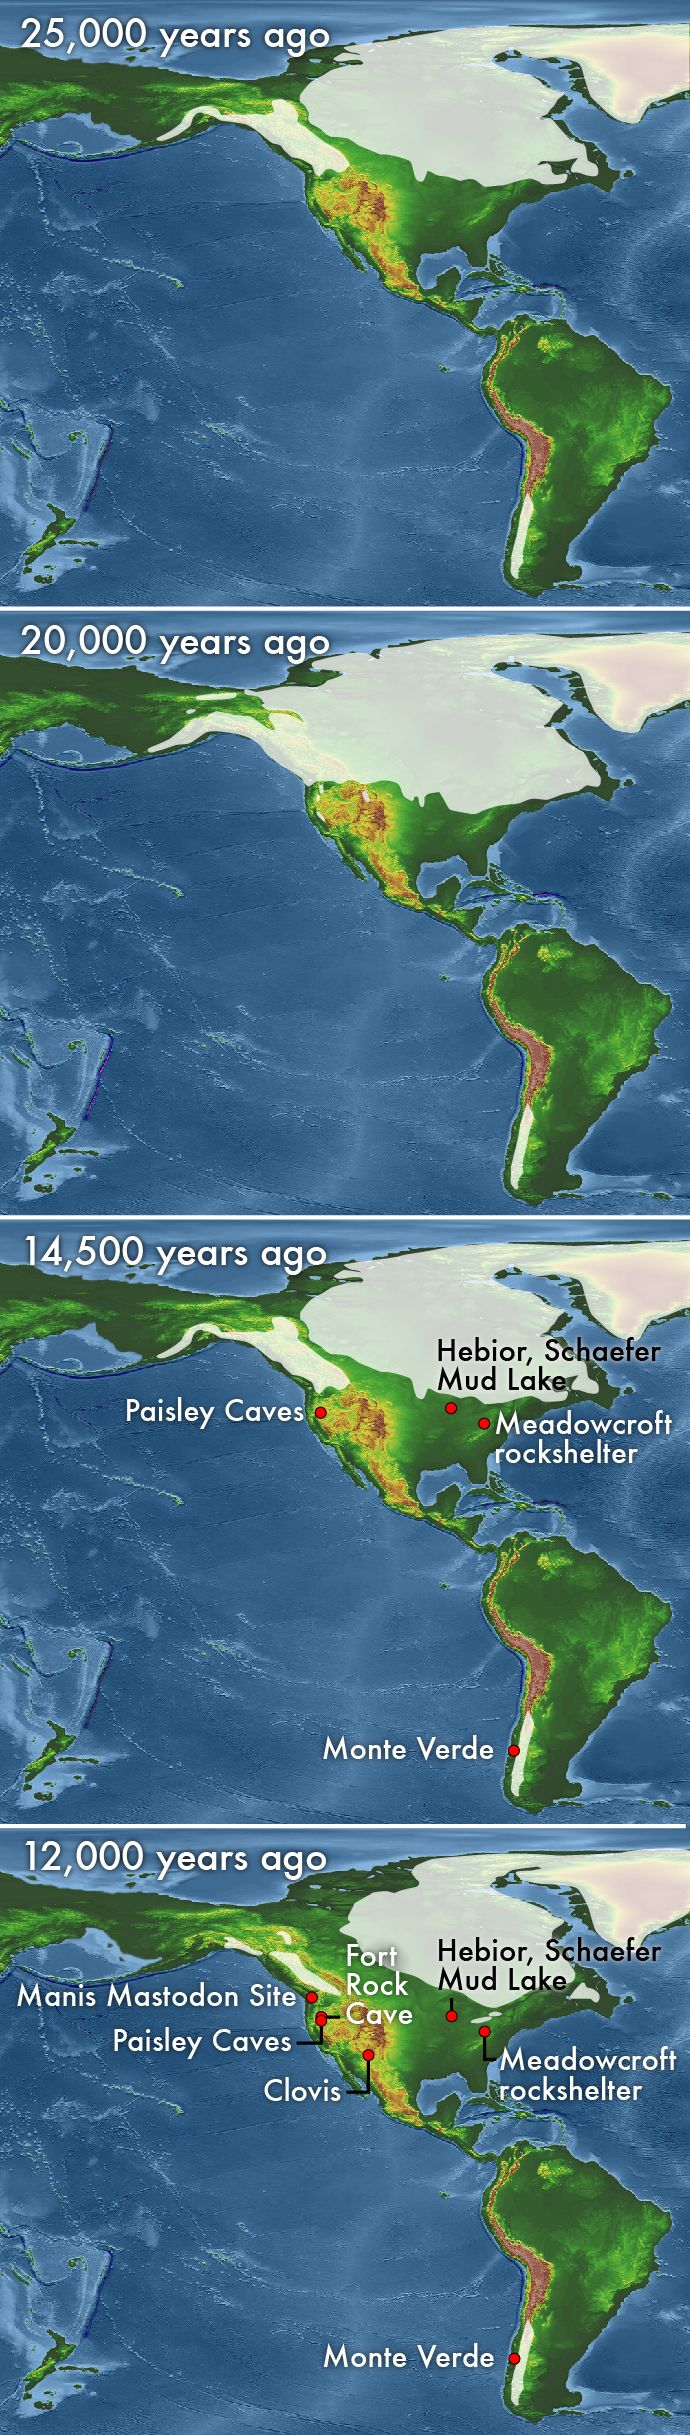 This series of maps shows the generalized glacial extent in North America as the Cordilleran and Laurentide ice sheets waxed and waned. From top to bottom, the maps show ice extent at about 25,000 years ago, 20,000 years ago, 14,500 years ago and 12,000 years ago. Credit: basemap by NOAA NGDC; modified by Kathleen Cantner, AGI.